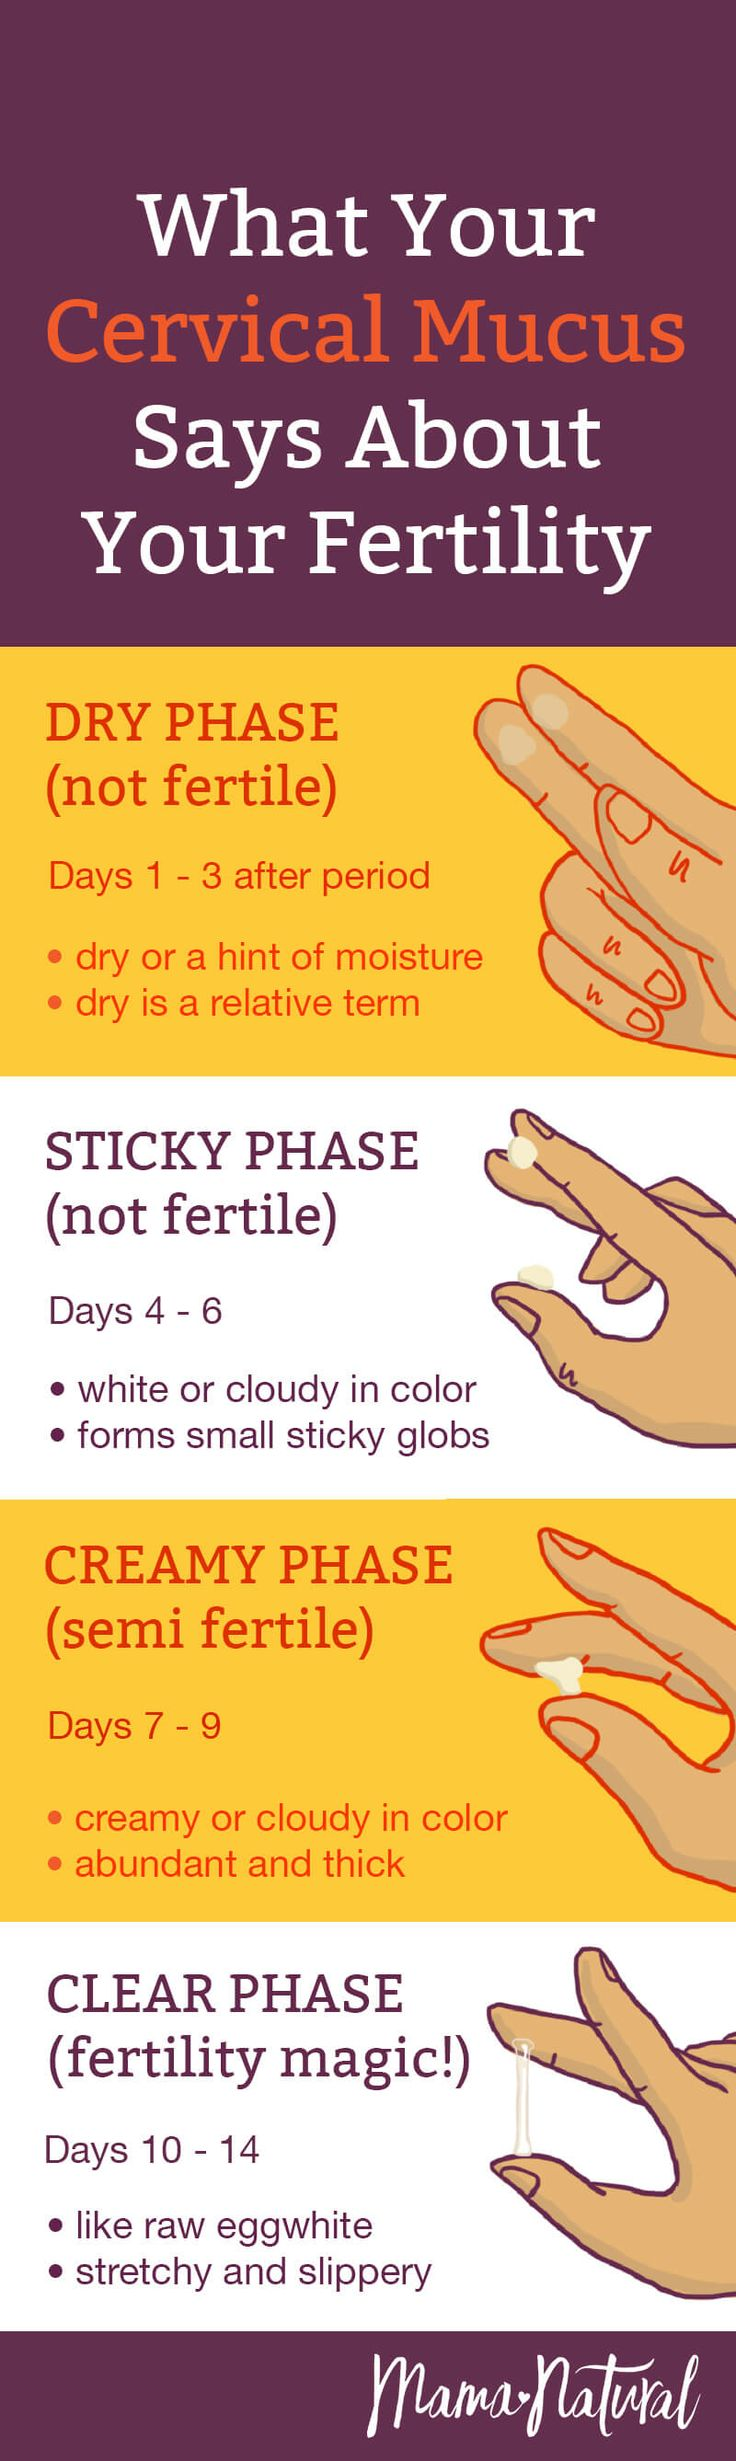 What does your cervical mucus say about your fertility? A lot, actually! See our cervical mucus chart to know exactly when to try and get pregnant (or not). https://www.mamanatural.com/cervical-mucus/